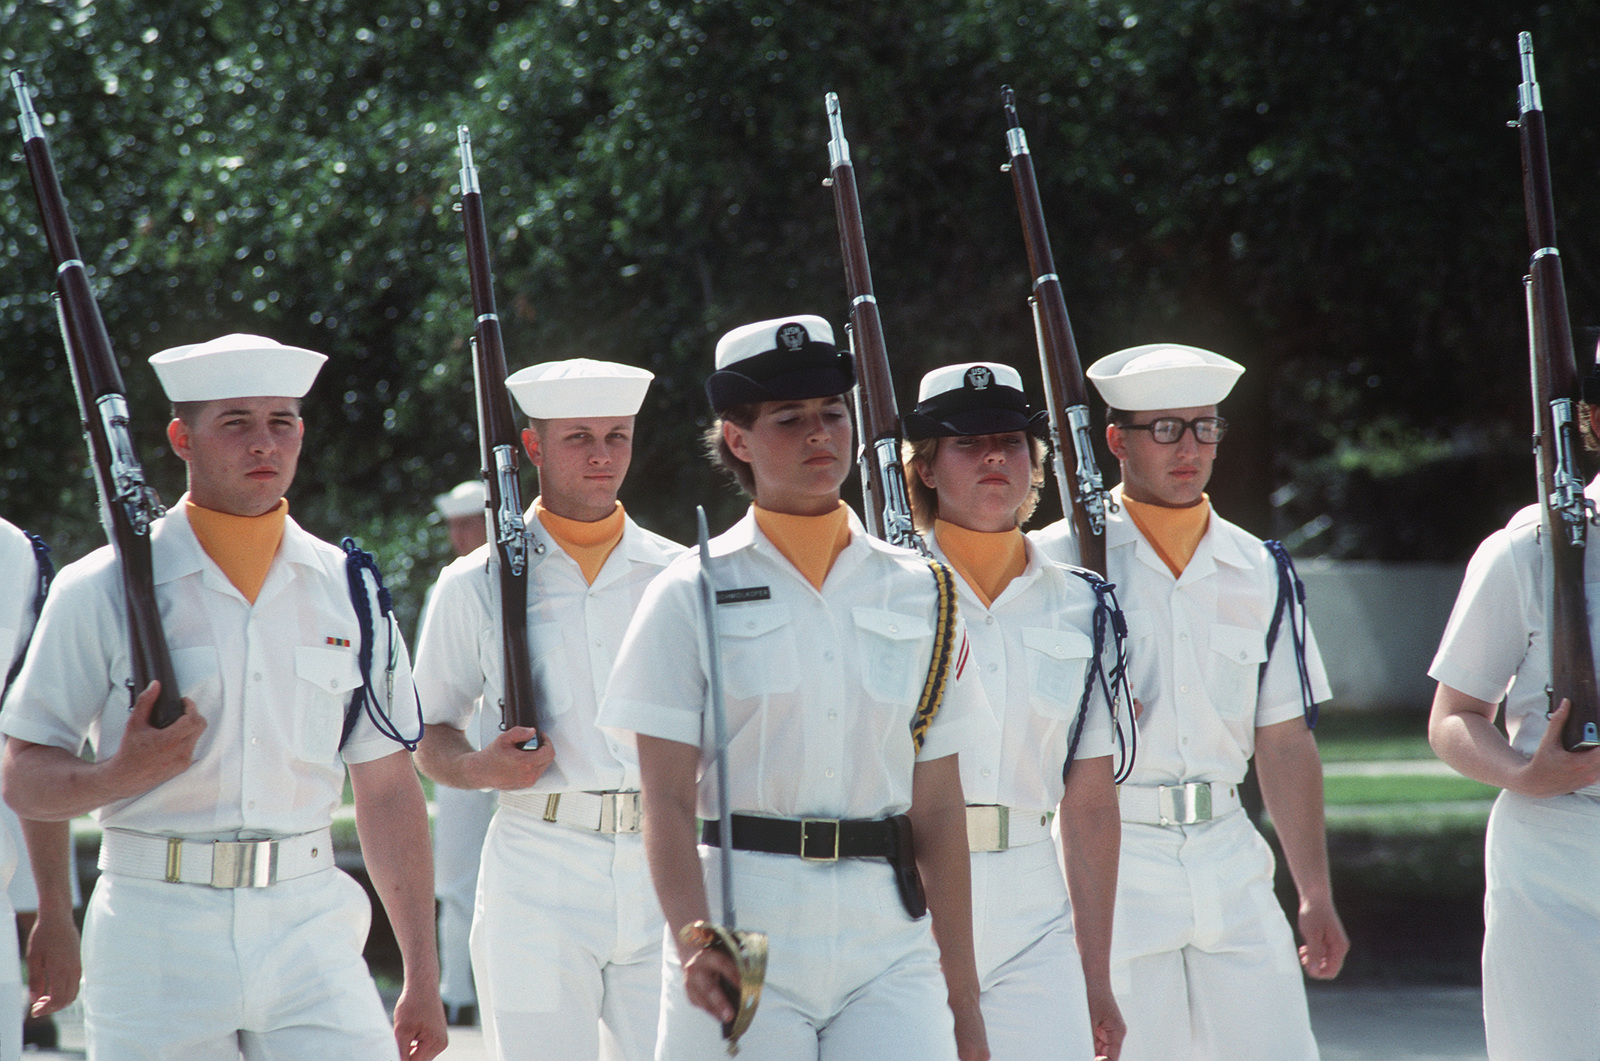 An honor guard stands at attention during boot camp